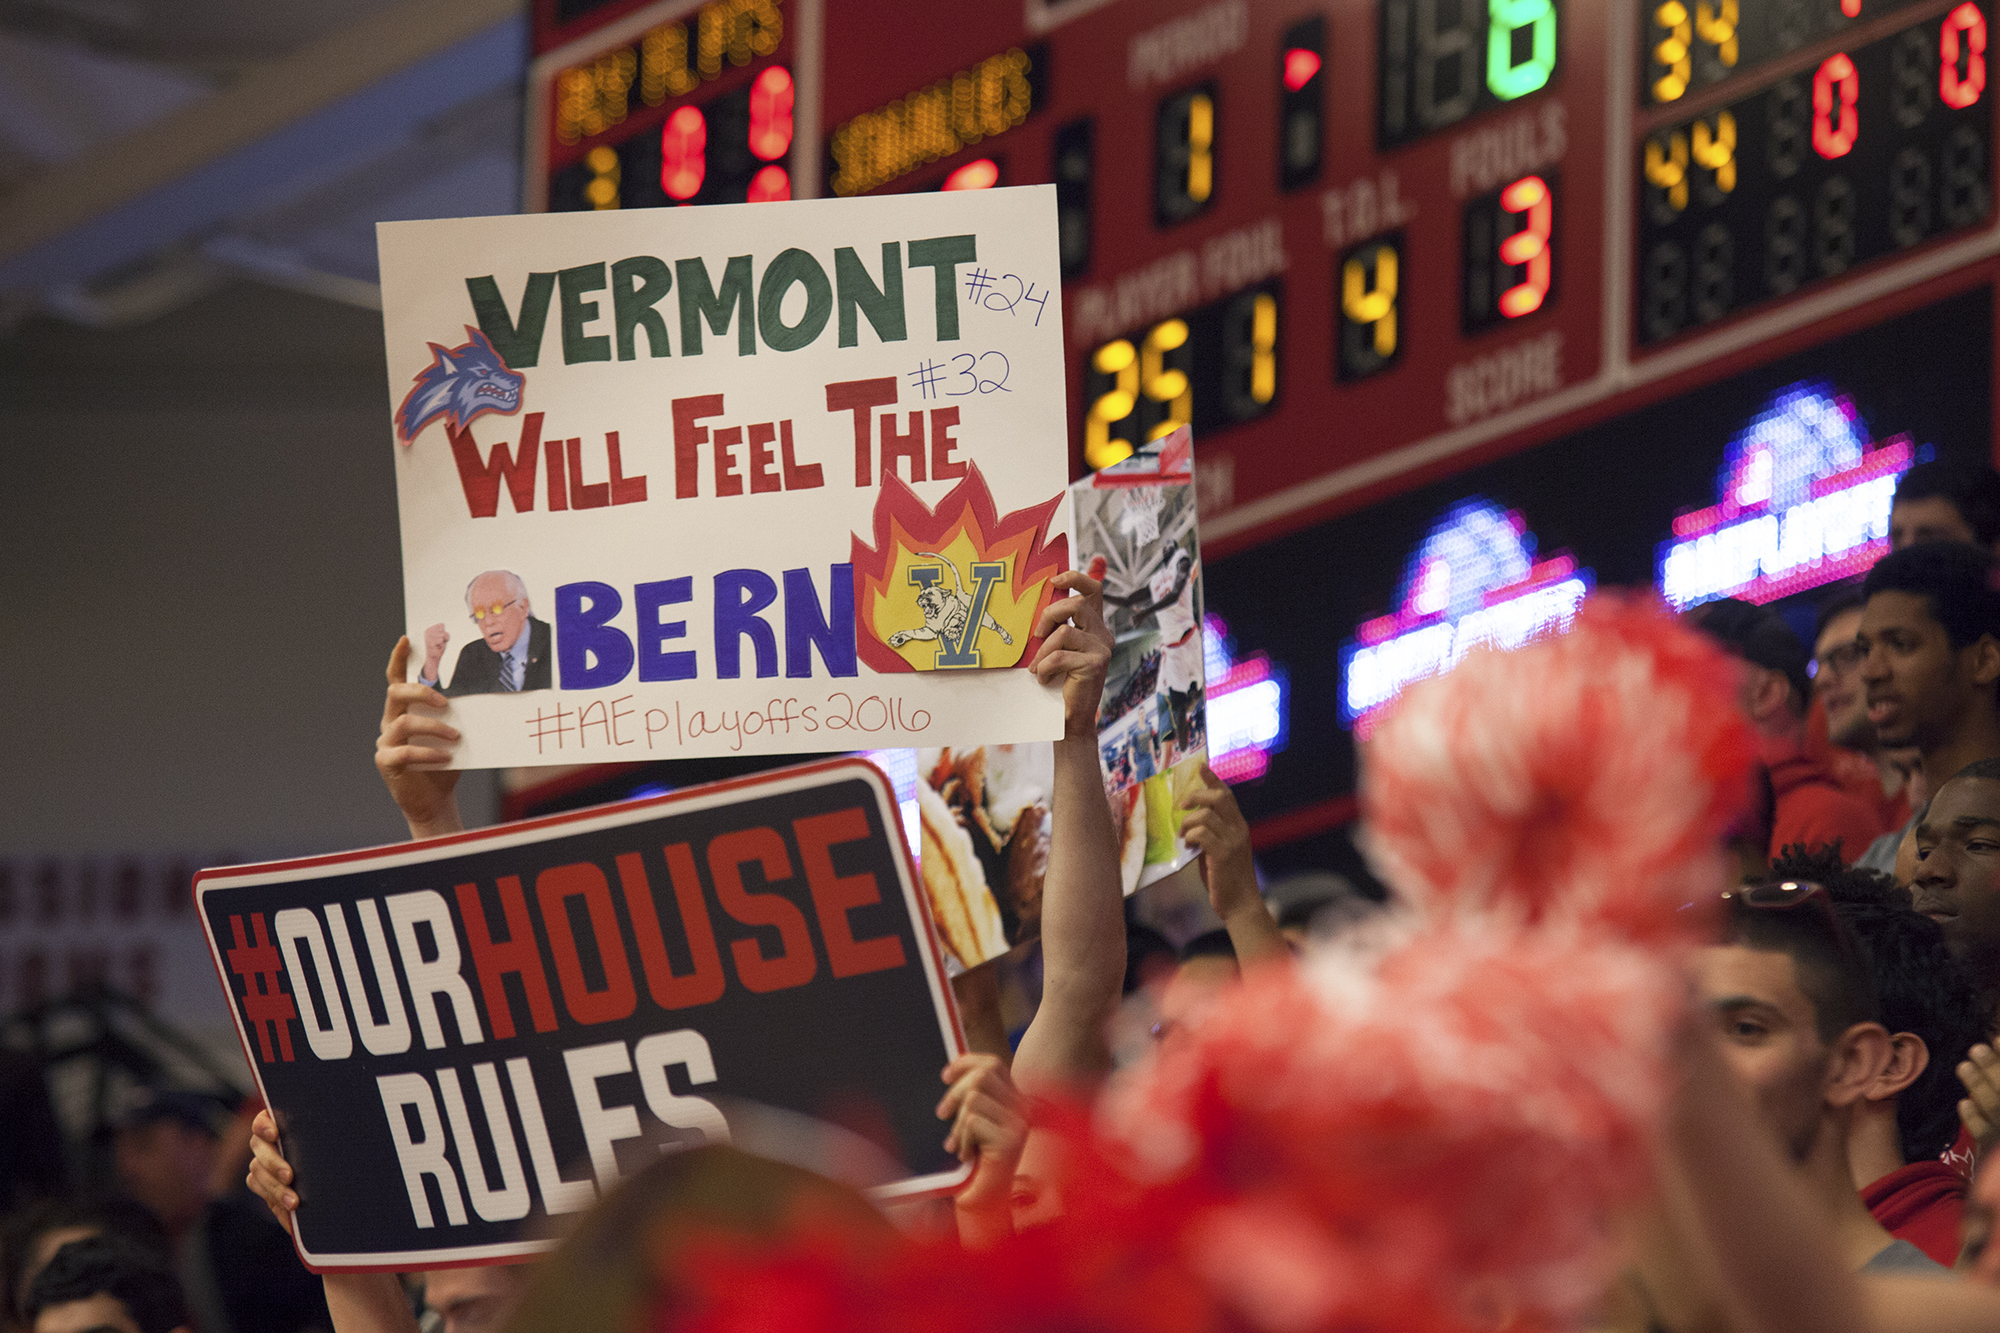 Stony Brook fans raise signs in support of their team. CHRISTOPHER CAMERON/THE STATESMAN